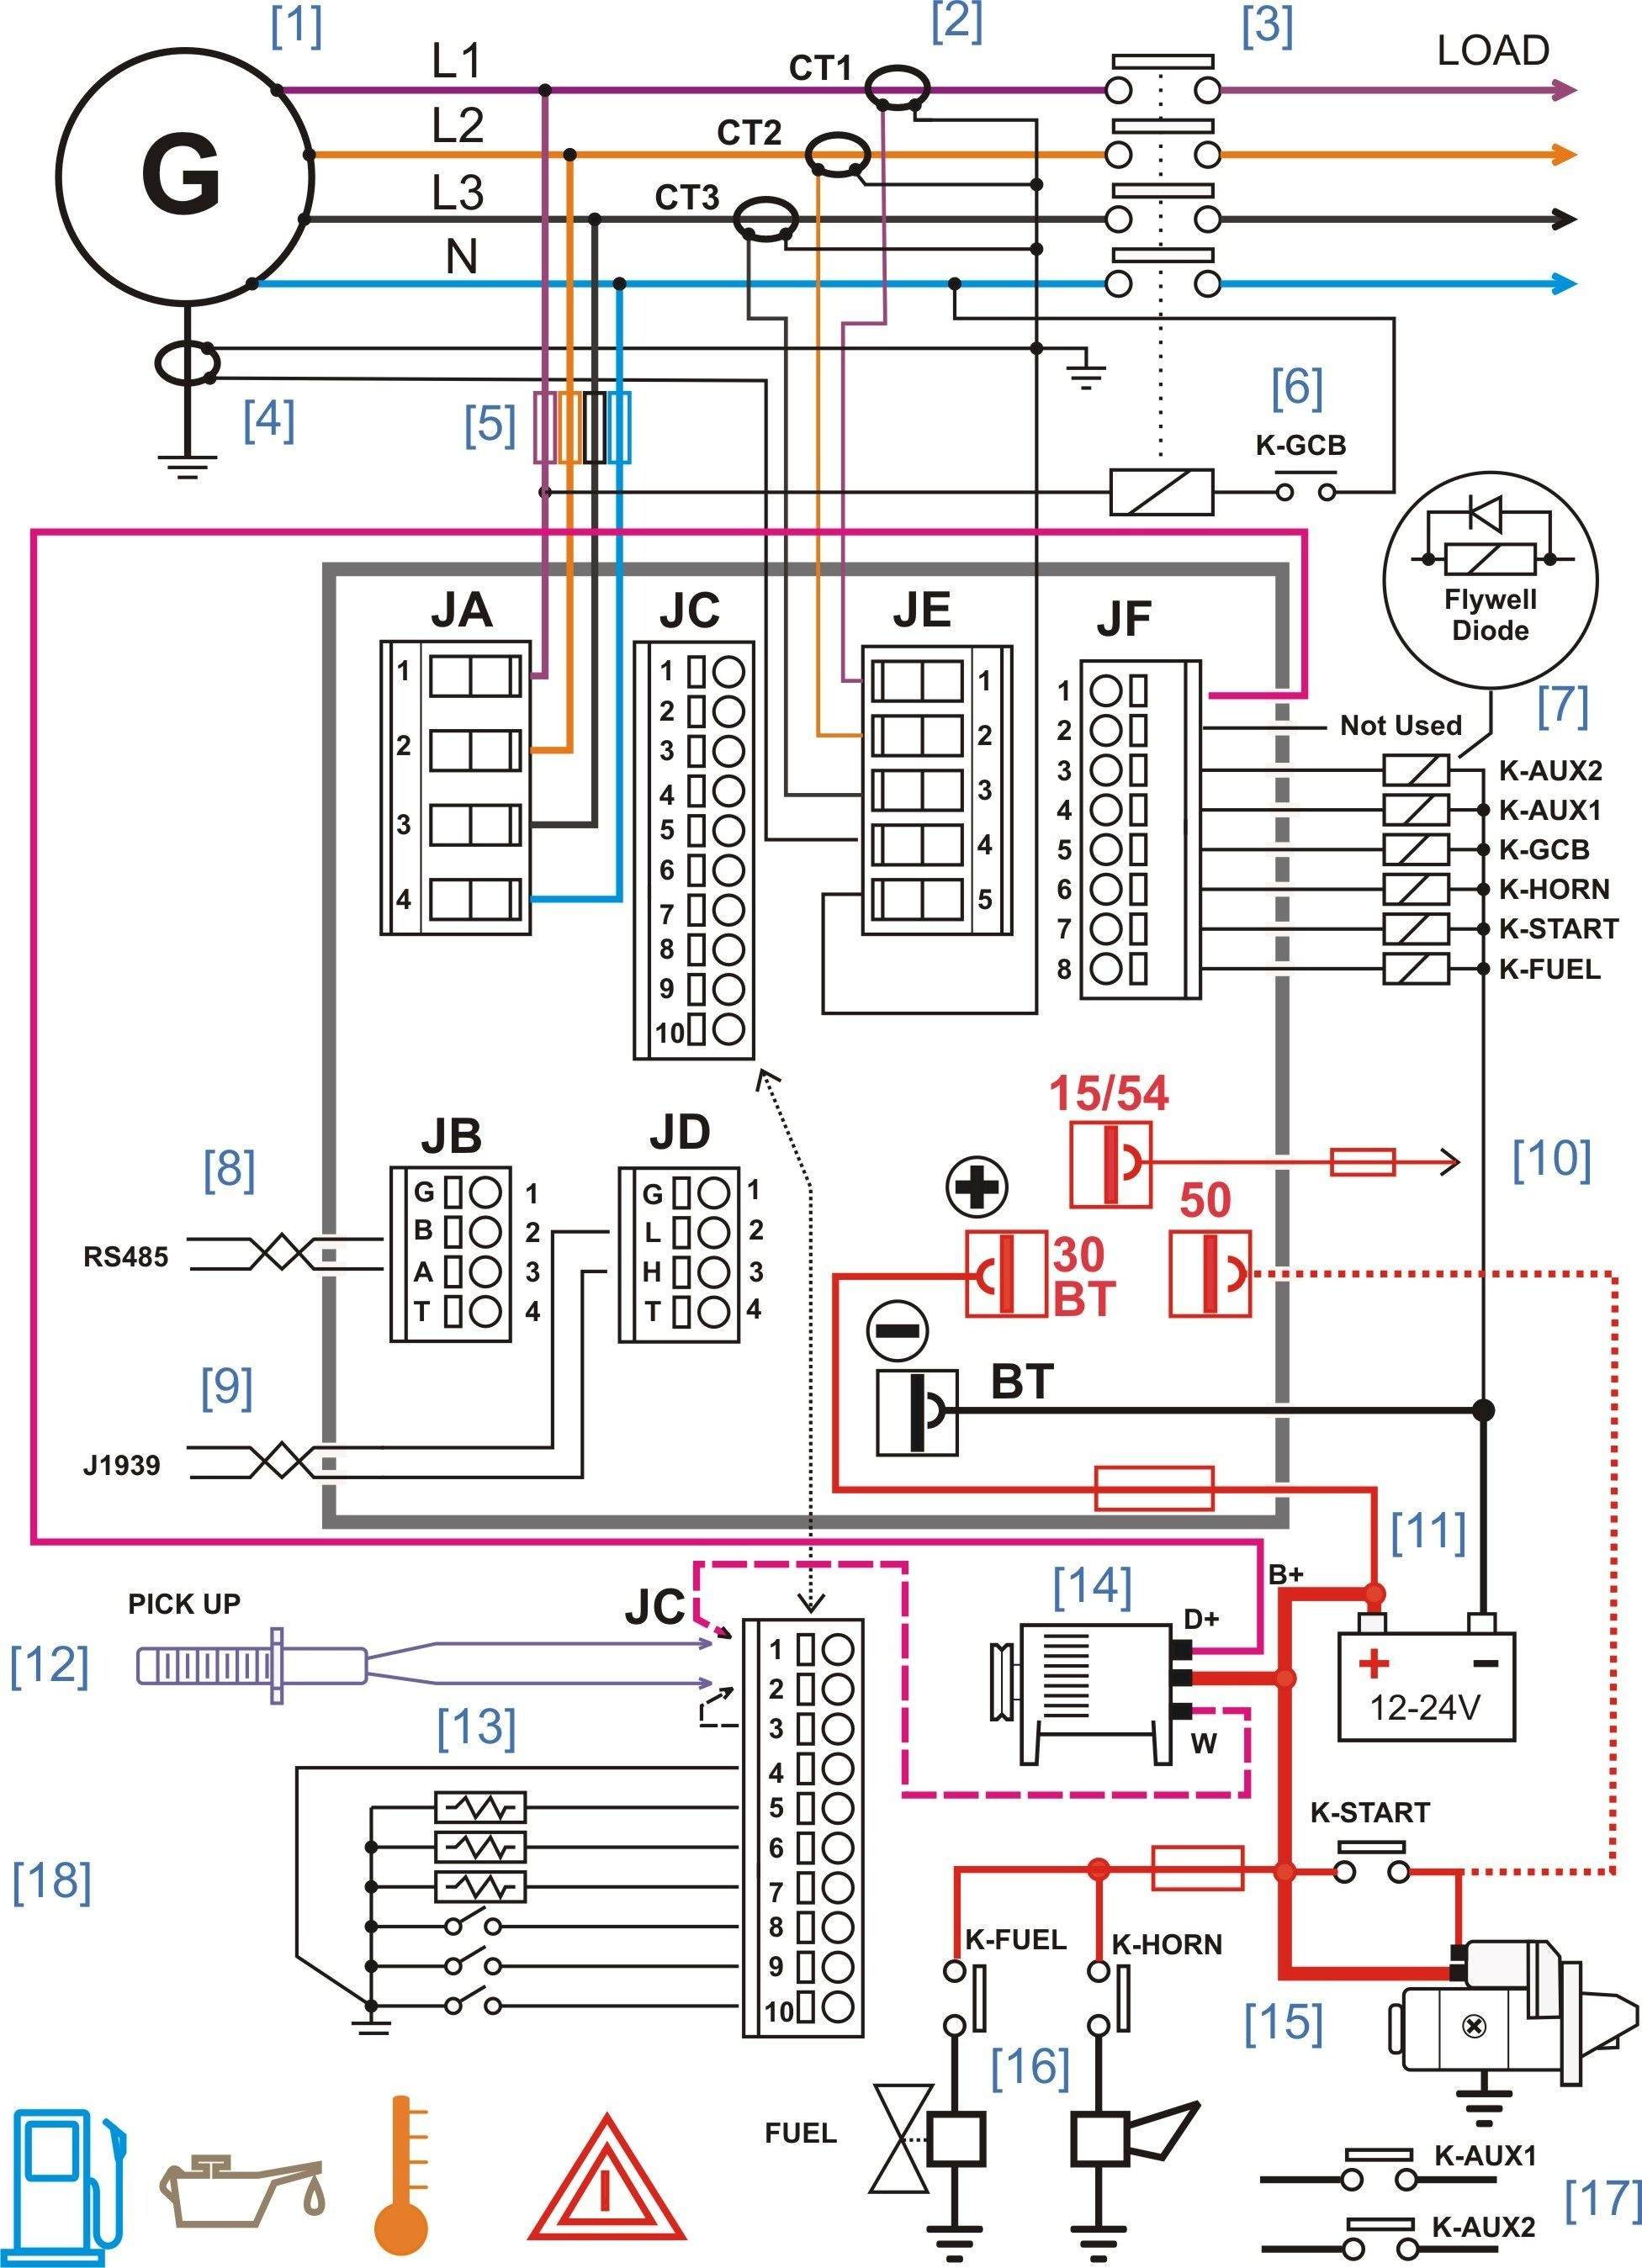 electrical panel wiring diagram software Download-Electrical Wiring Diagram software for Mac Refrence Electrical Circuit Diagram software originalstylophone 17-q